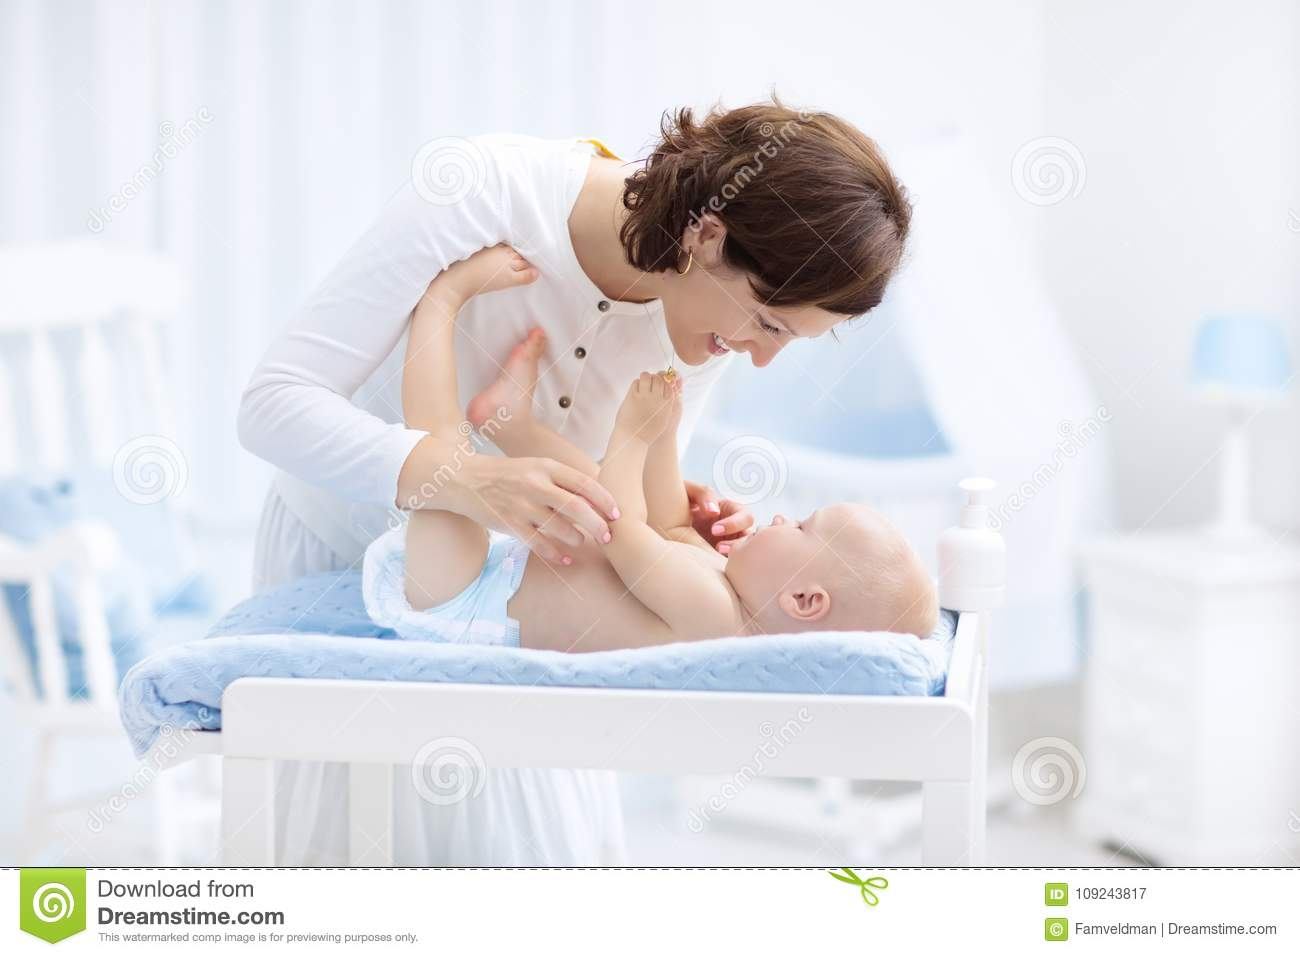 Mother And Baby In Diaper On Changing Table Stock Image Image Of Baby Little 109243817